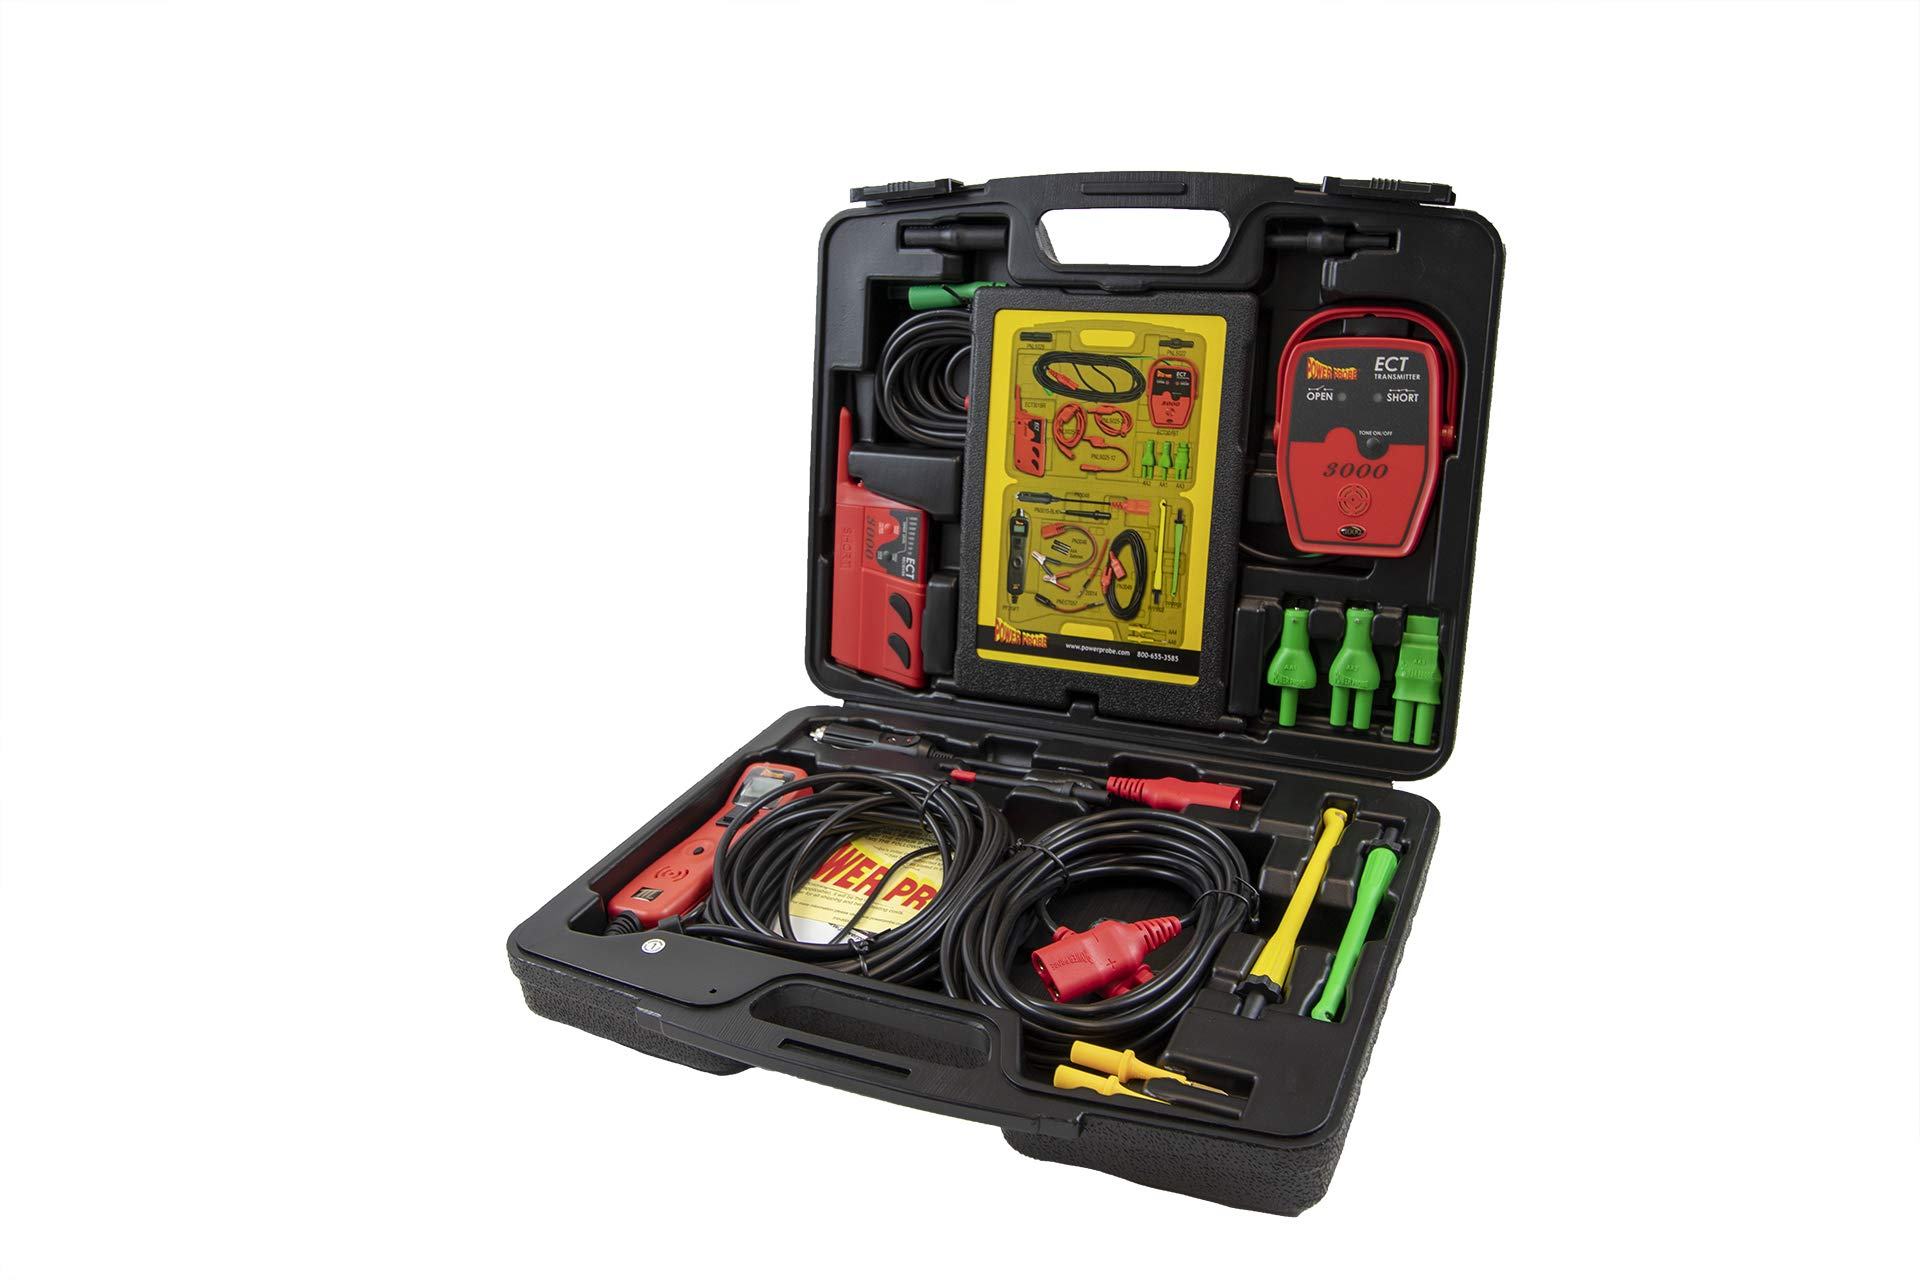 Diesel Laptops Power Probe 3 (III) Master Combo Kit with 12-Months of Truck Fault Codes by Diesel Laptops (Image #3)